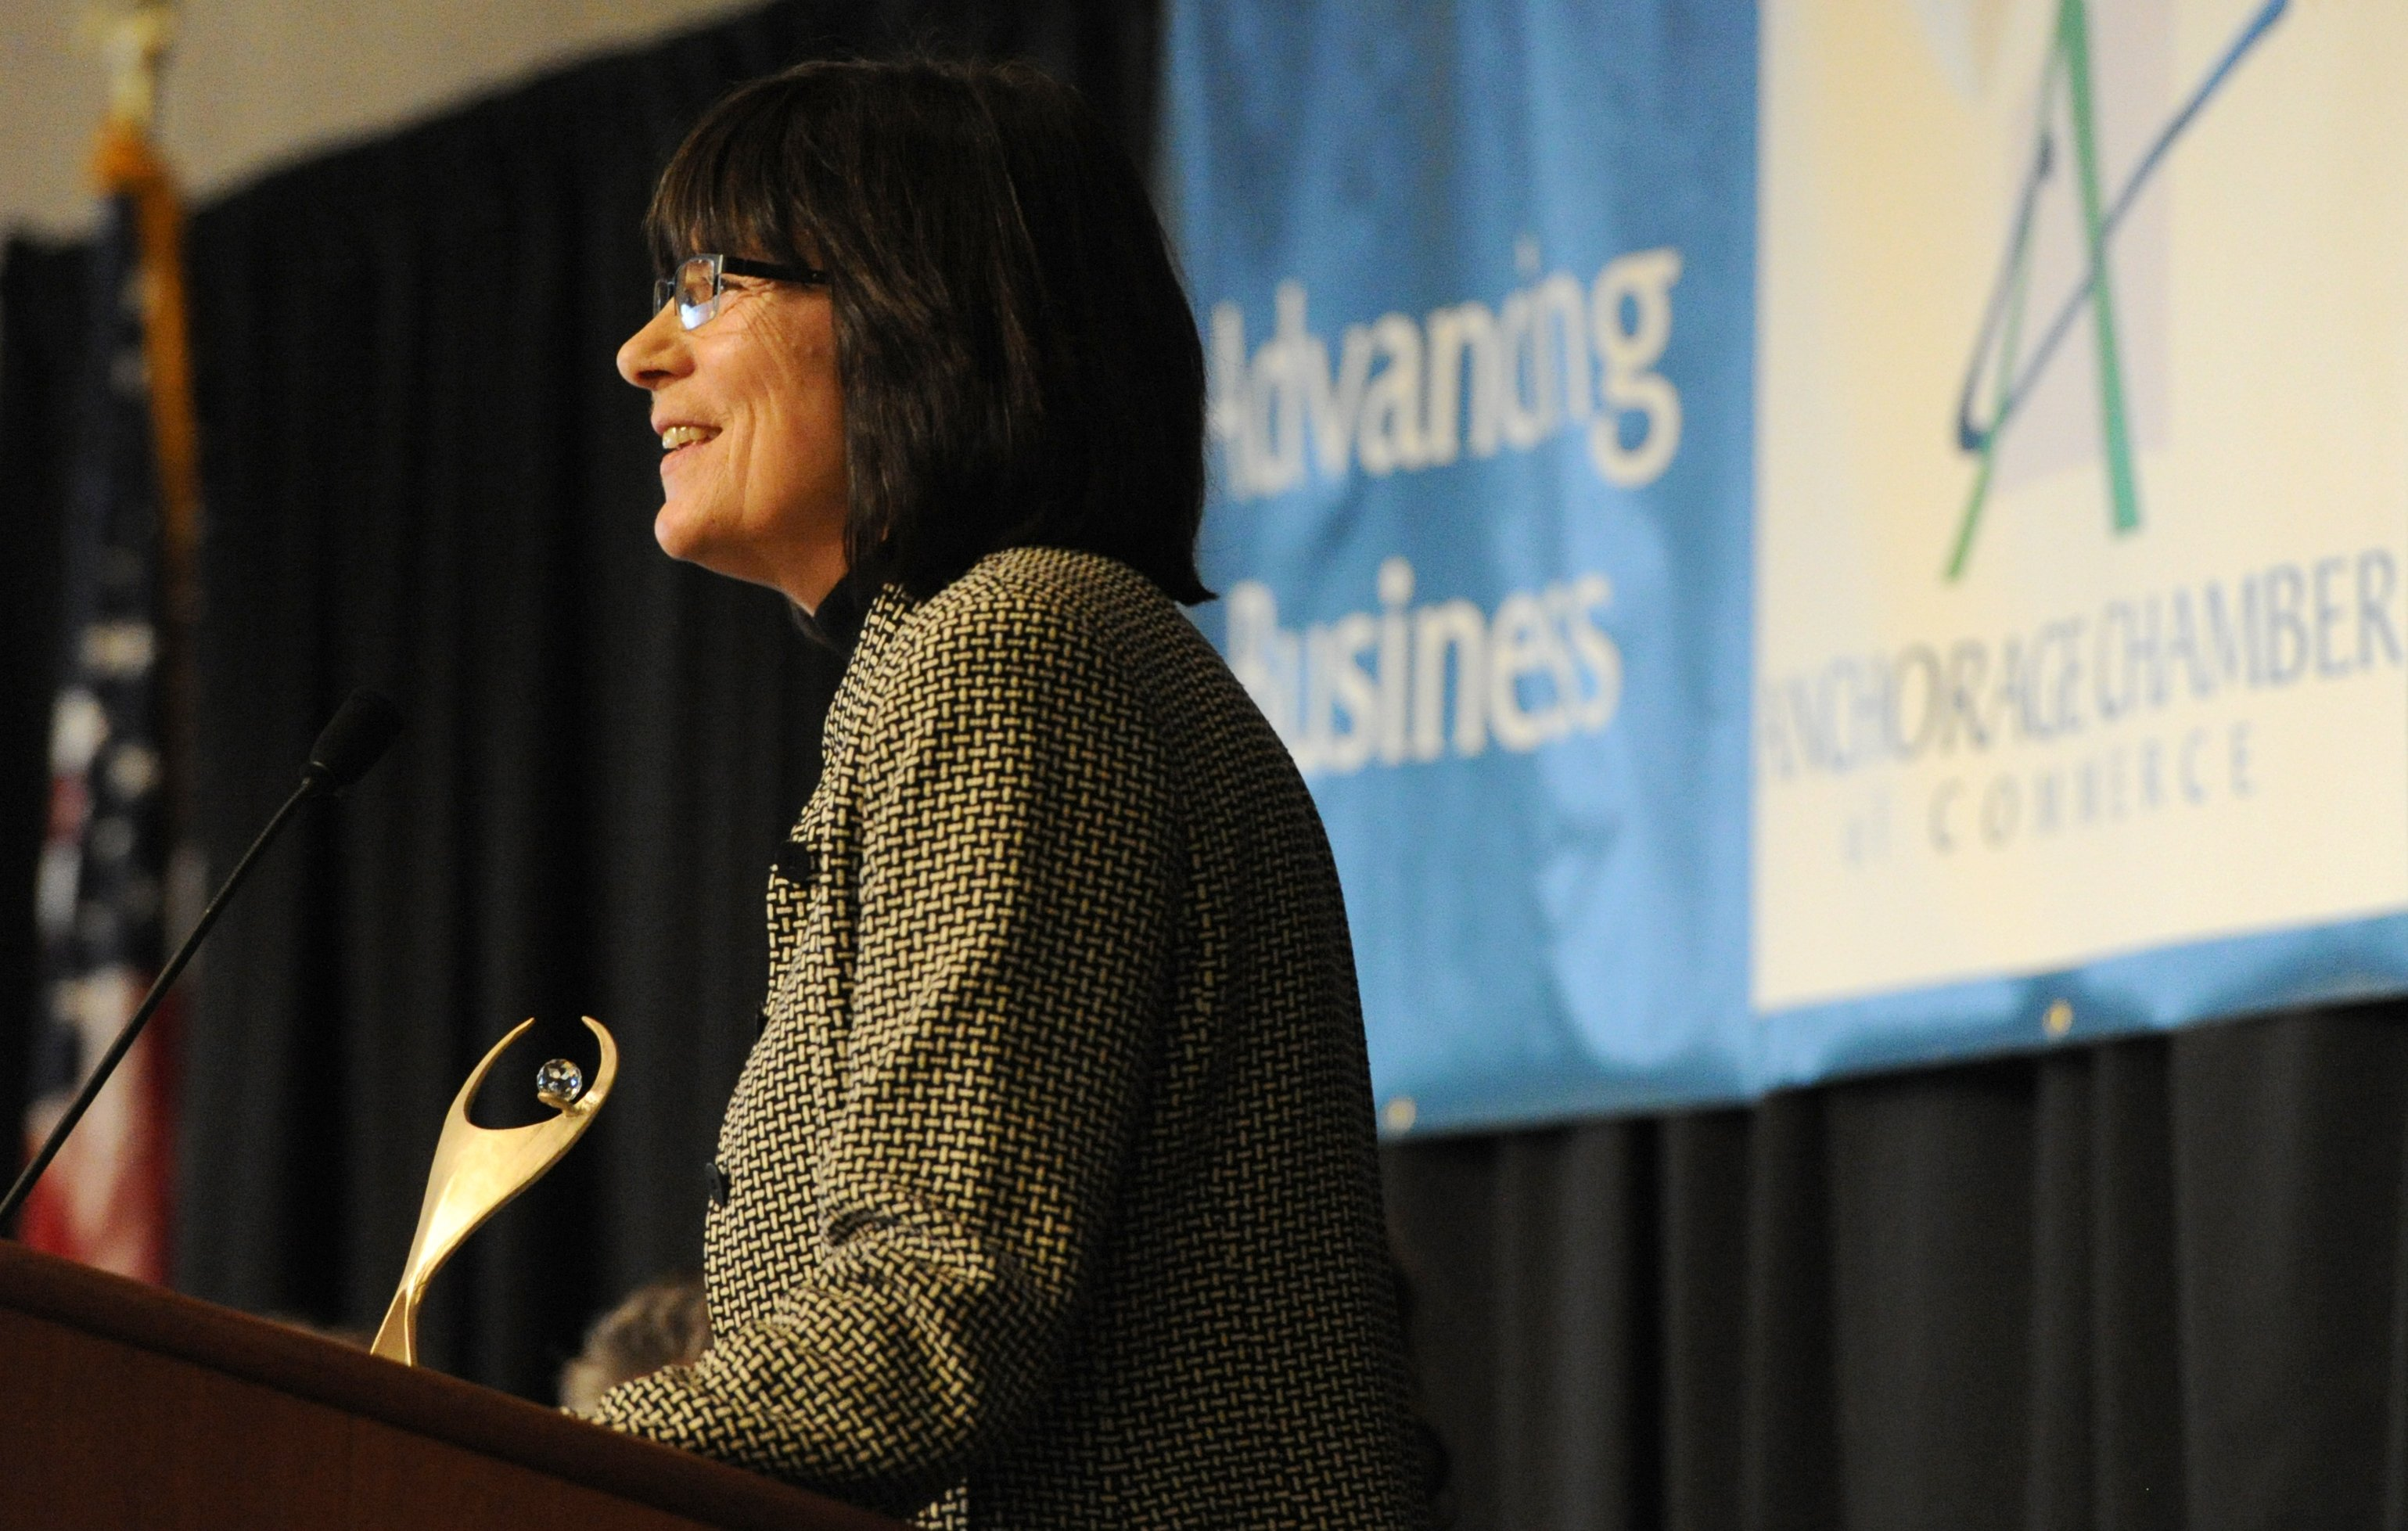 Helvi Sandvik, president of NANA Development Corporation was presented the ATHENA Award during the Anchorage Chamber of Commerce's 19th annual Anchorage ATHENA Society Award Luncheon at the Dena'ina Center on Monday, Mar. 25, 2013. (Bill Roth / Alaska Dispatch News archive)